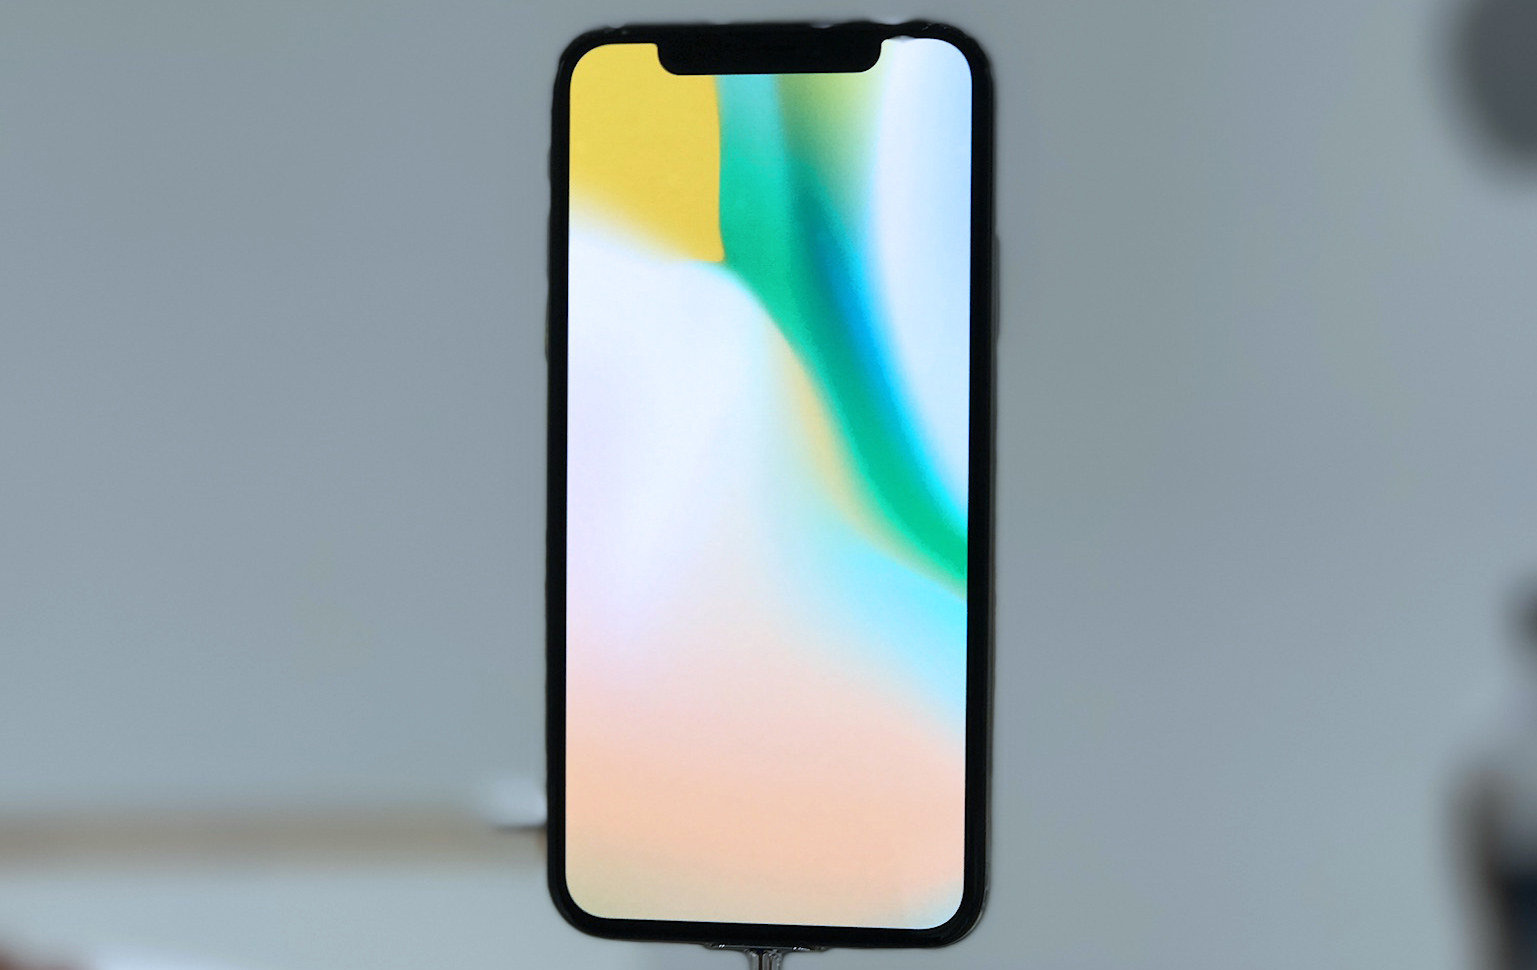 You Can Add The Iphone X's Notch To Any Other Iphone - Fake Notch , HD Wallpaper & Backgrounds